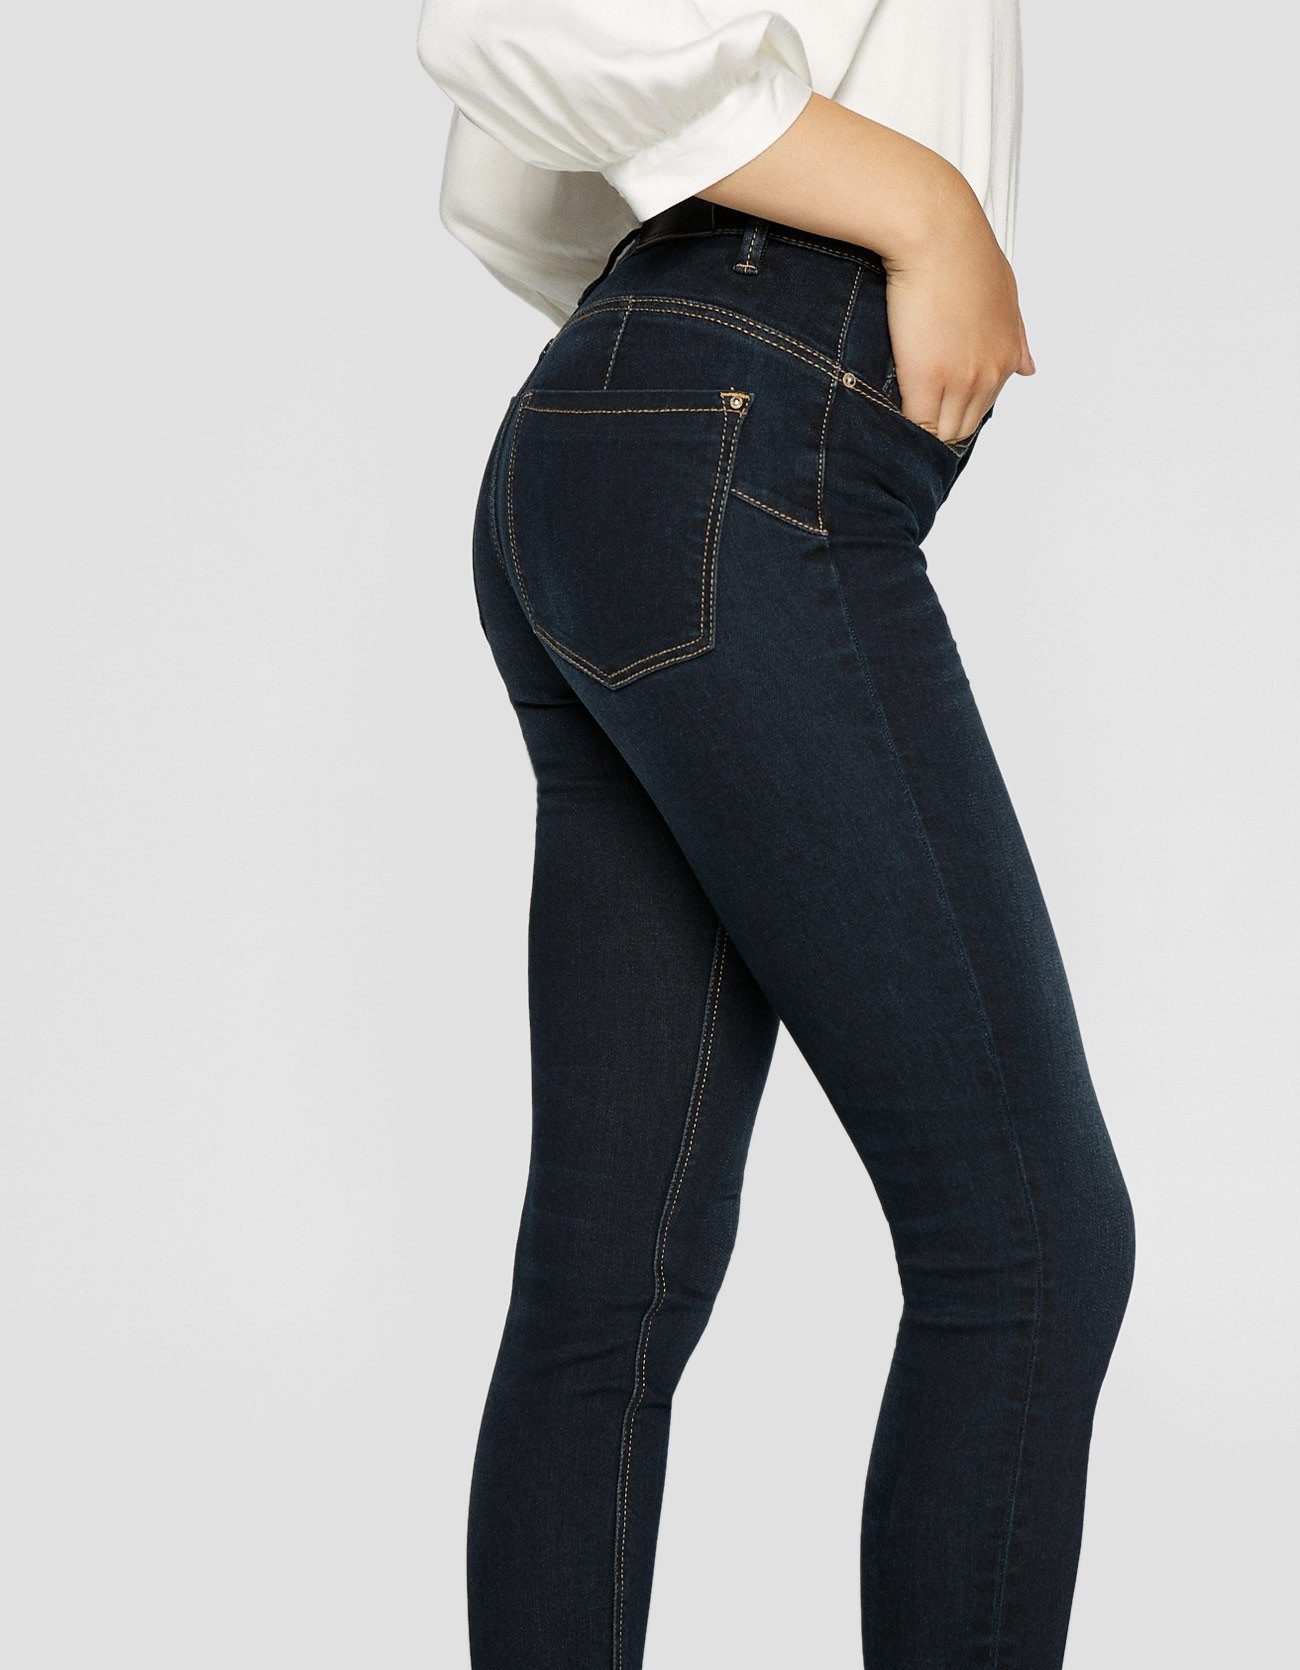 Jeans push up Stradivarius a 25,99 euro